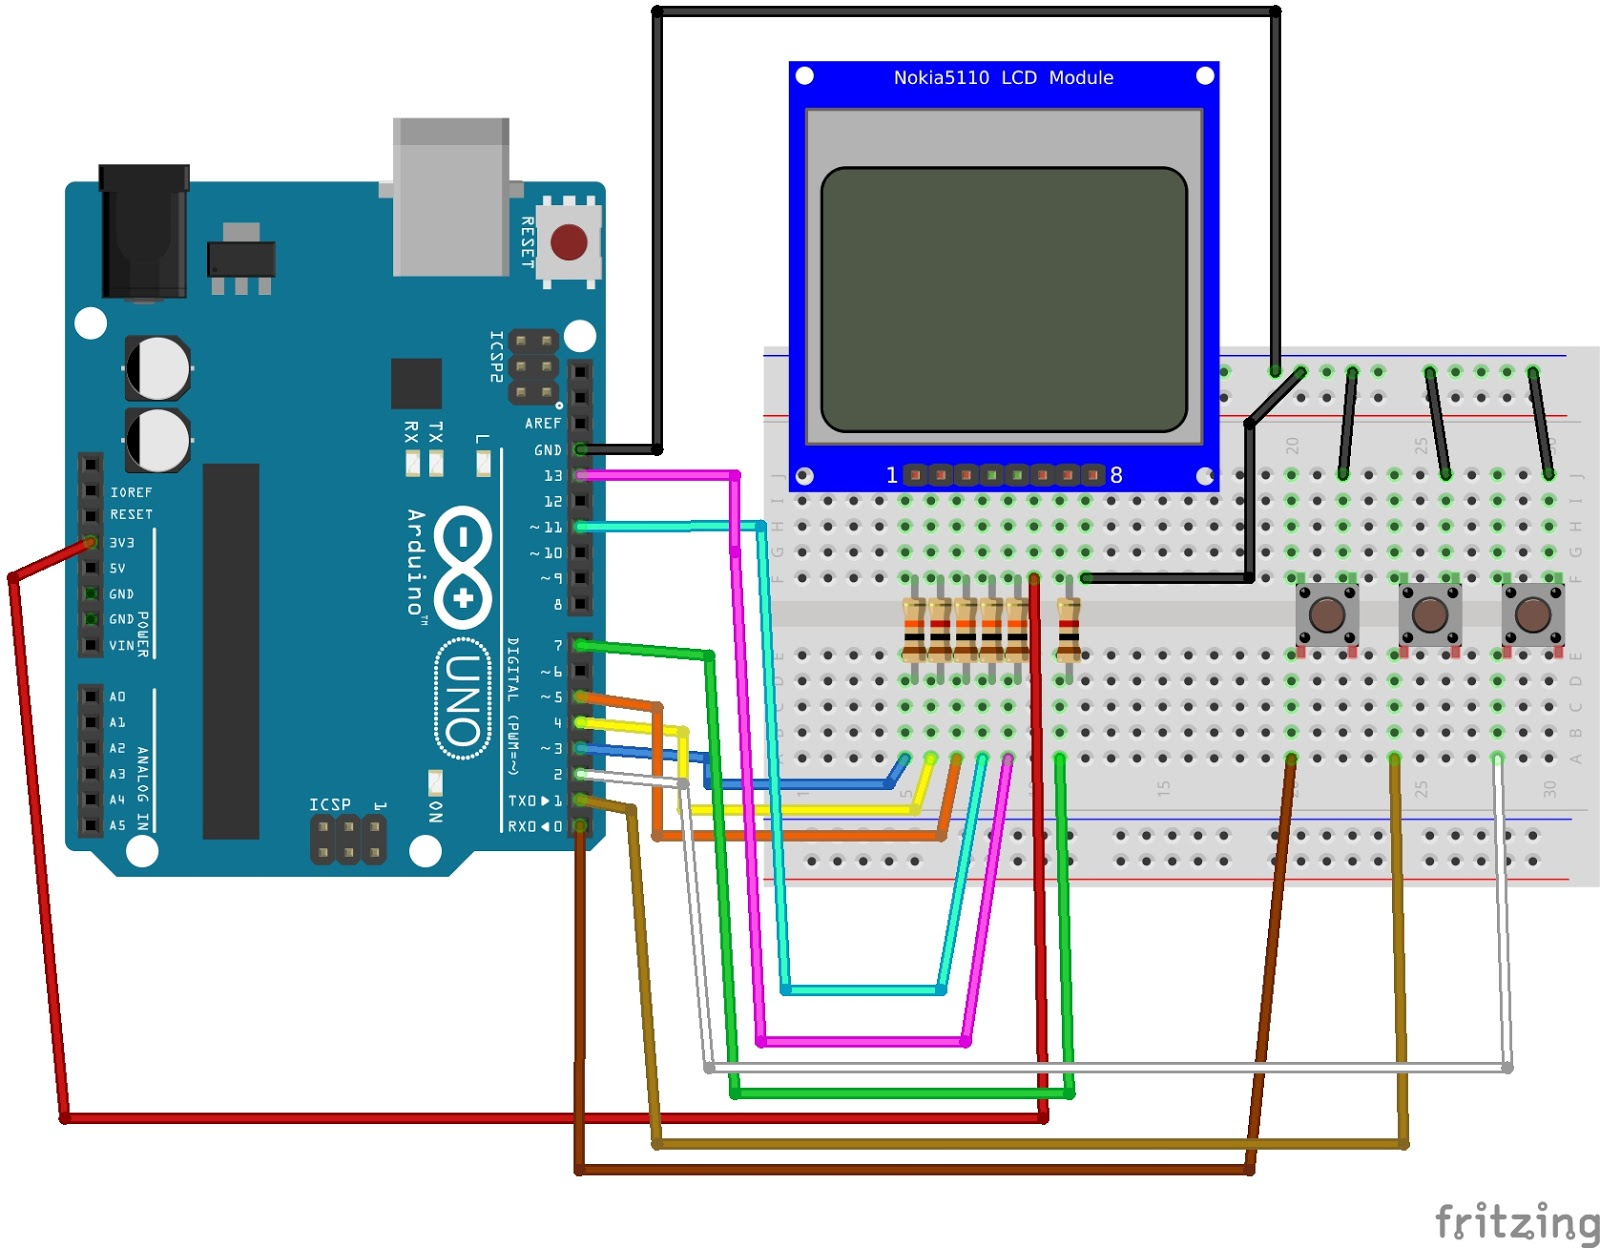 connect the pin 1 (rst pin) to the pin 3 of arduino through the 10k  resistor